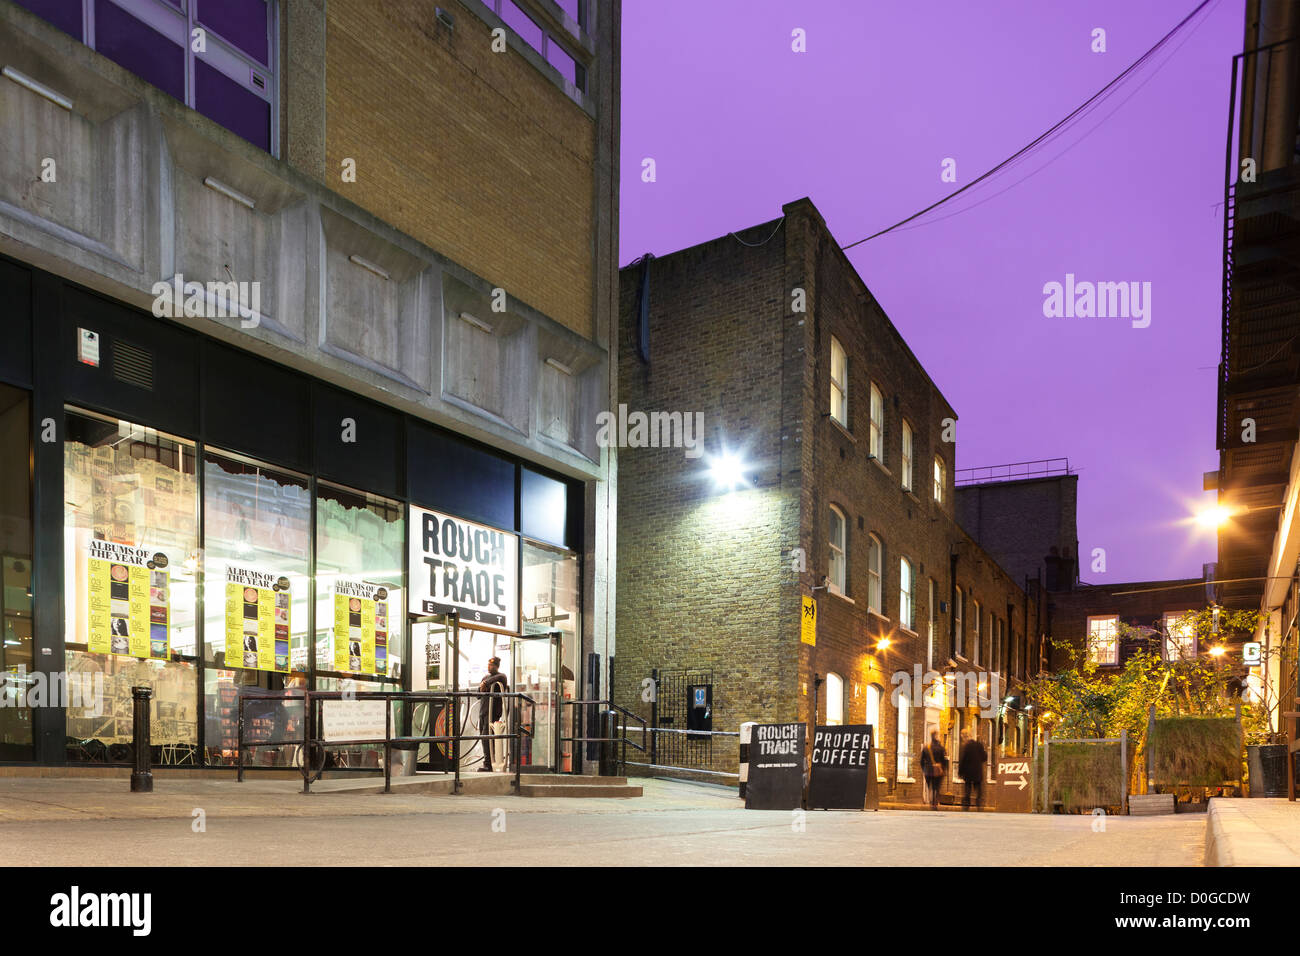 Rough Trade East record store extérieur, Dray, London Shoreditch. Boutique de la Old Truman Brewery juste à Photo Stock